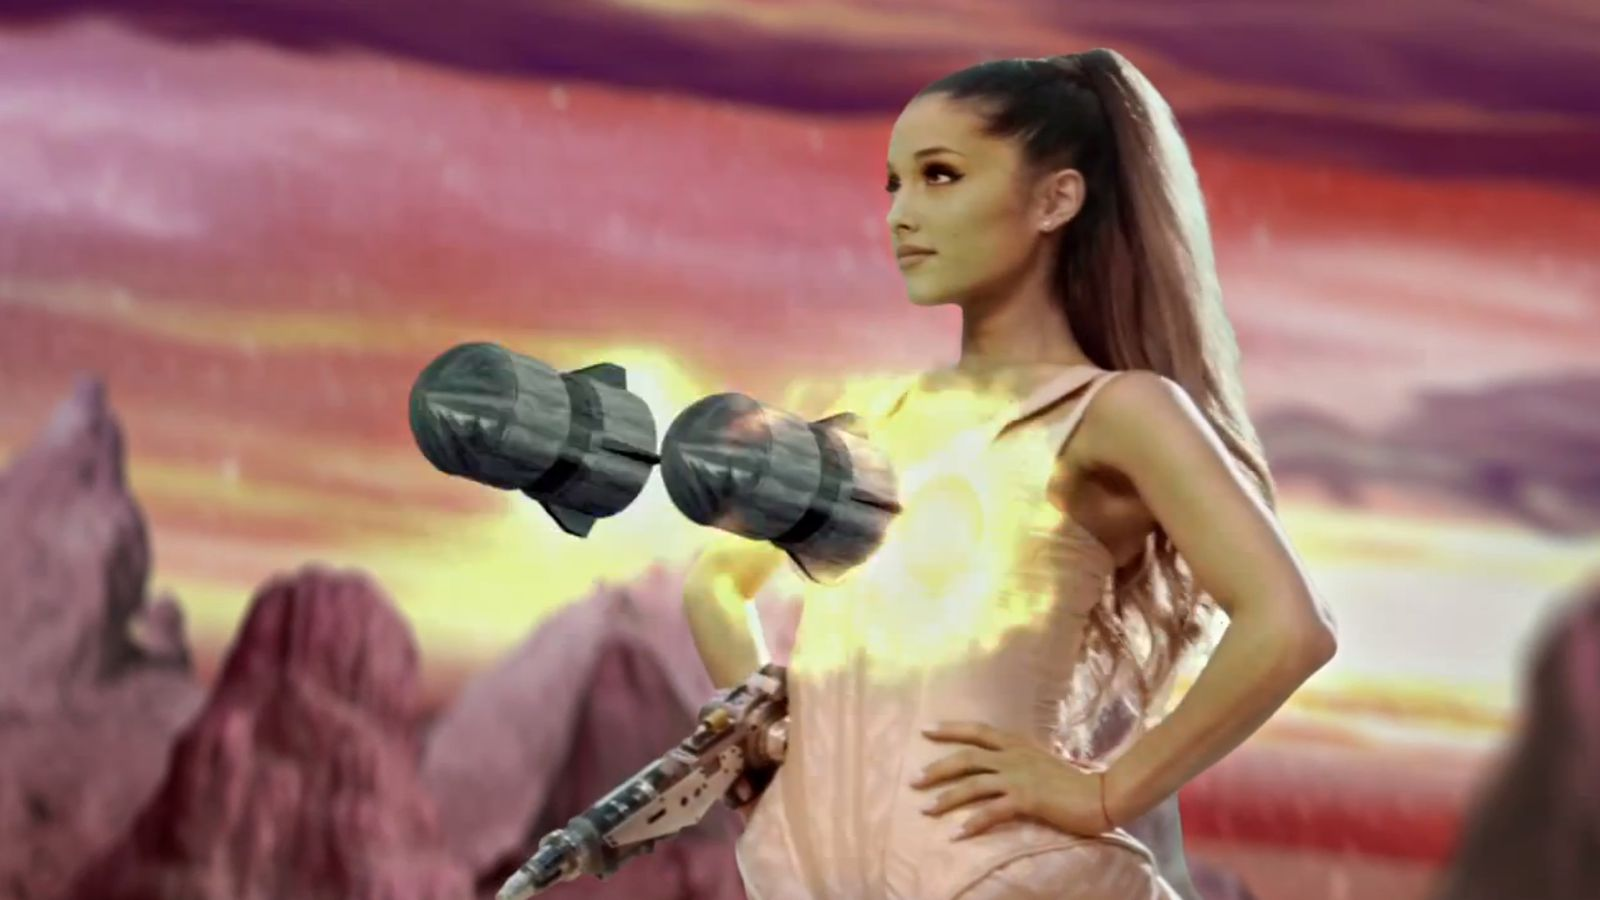 Ariana Grandes New Break Free Music Video Is A Trippy -9382